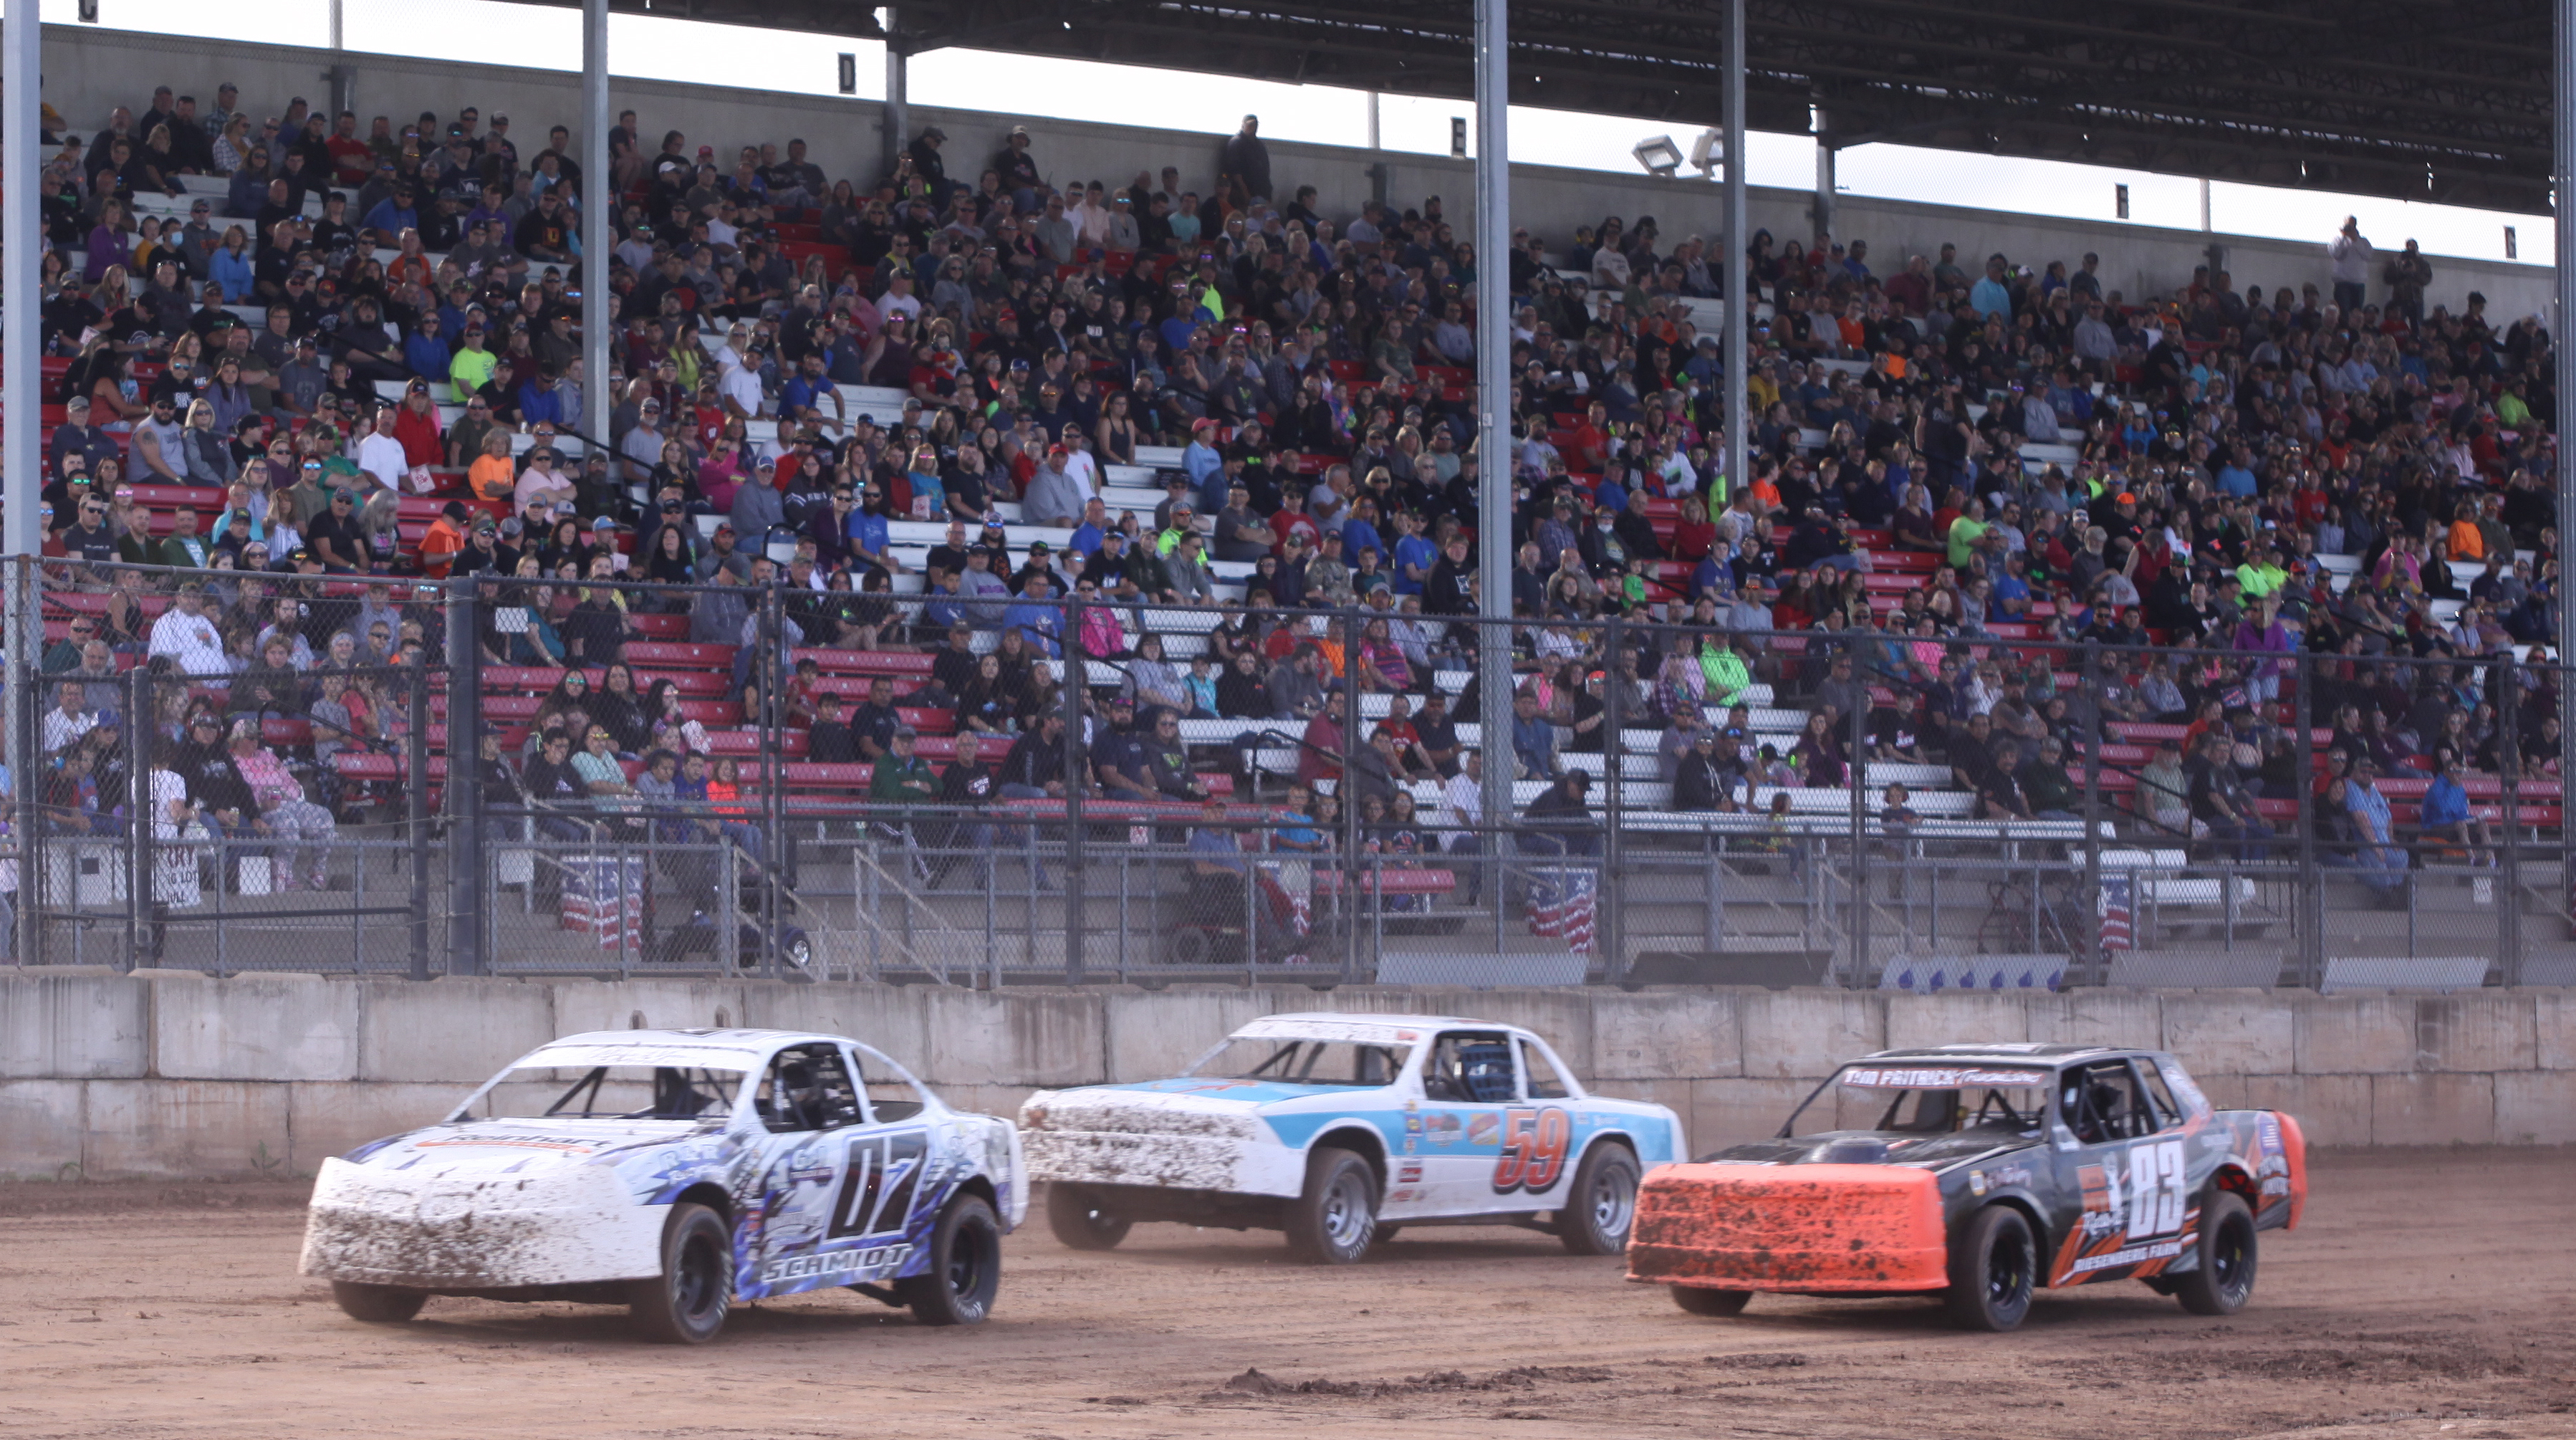 Mike Schmidt (7), Larry Buckwheat (59) and Cody Scray (83) compete in a IMCA Stock Car heat race in front of the Shawano Speedway grandstand during Saturday&#039;s season opener.<br />Morgan Rode | NEW Media